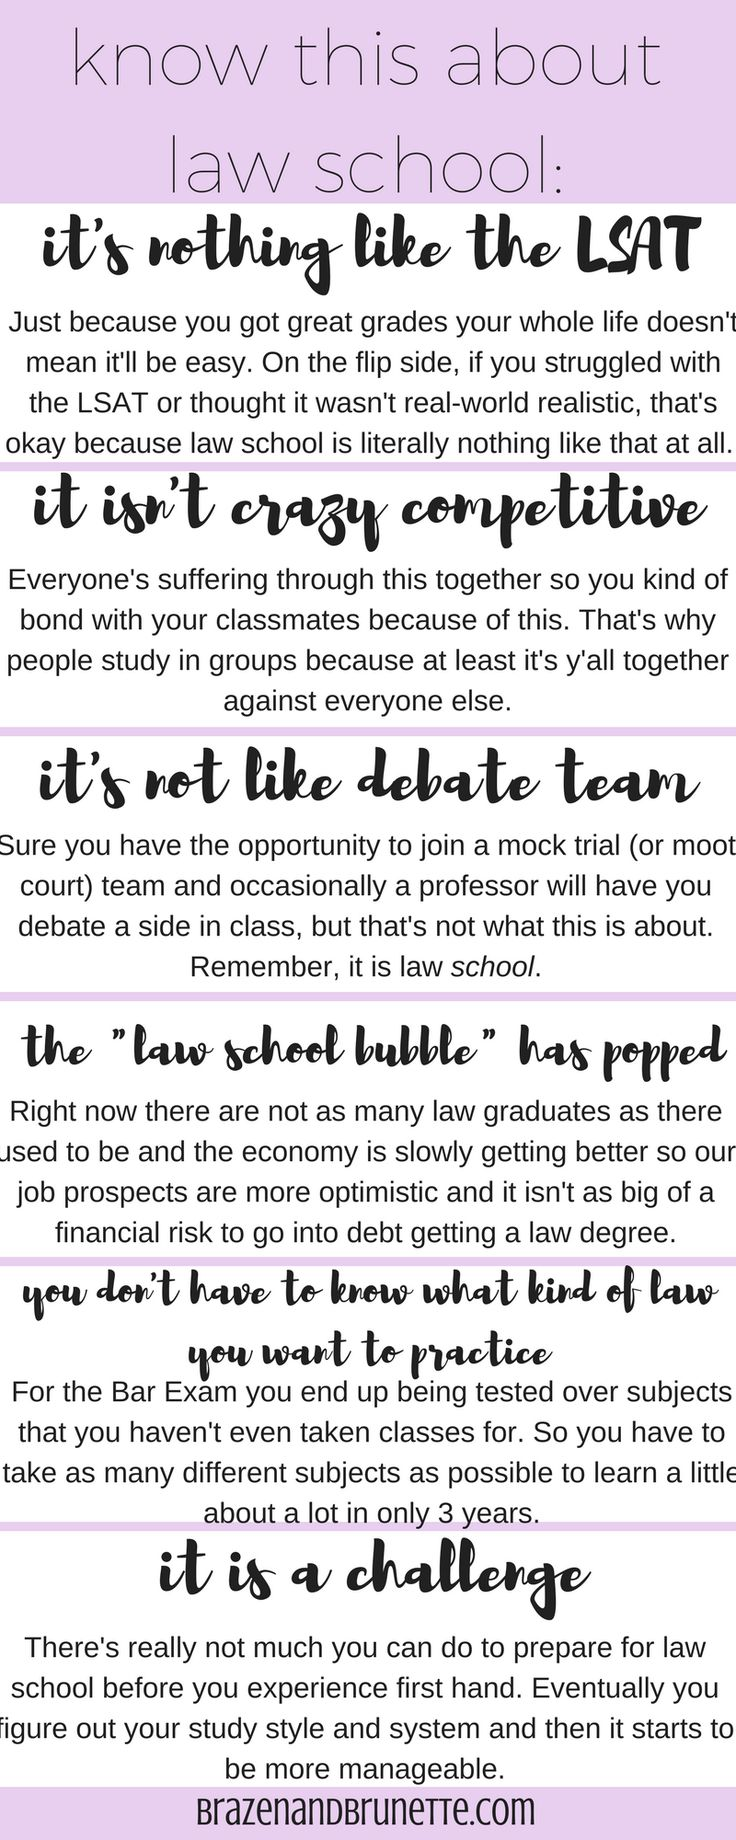 11 things to consider before applying to law school | brazenandbrunette.com